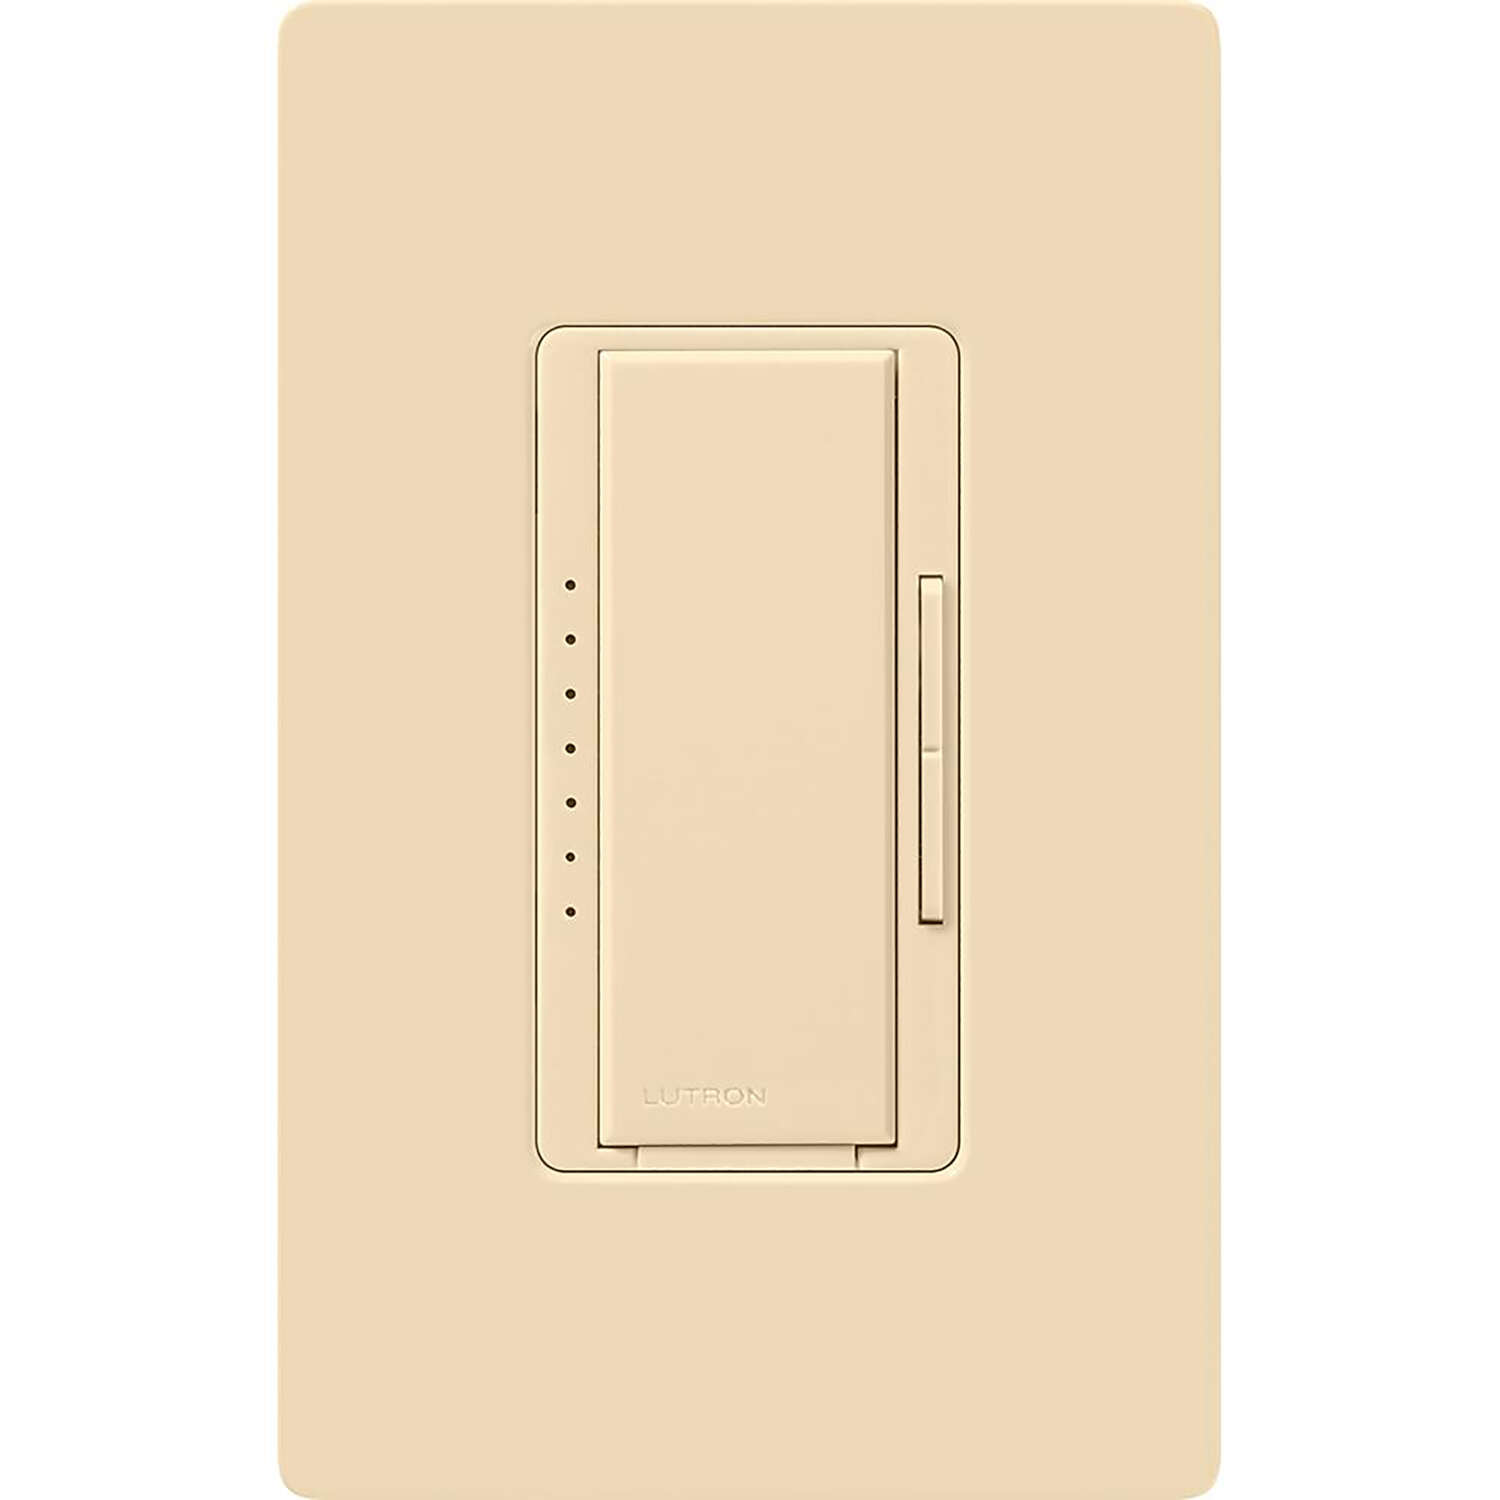 Lutron  Maestro  Ivory  150 watt 3-Way  Dimmer Switch  1 pk